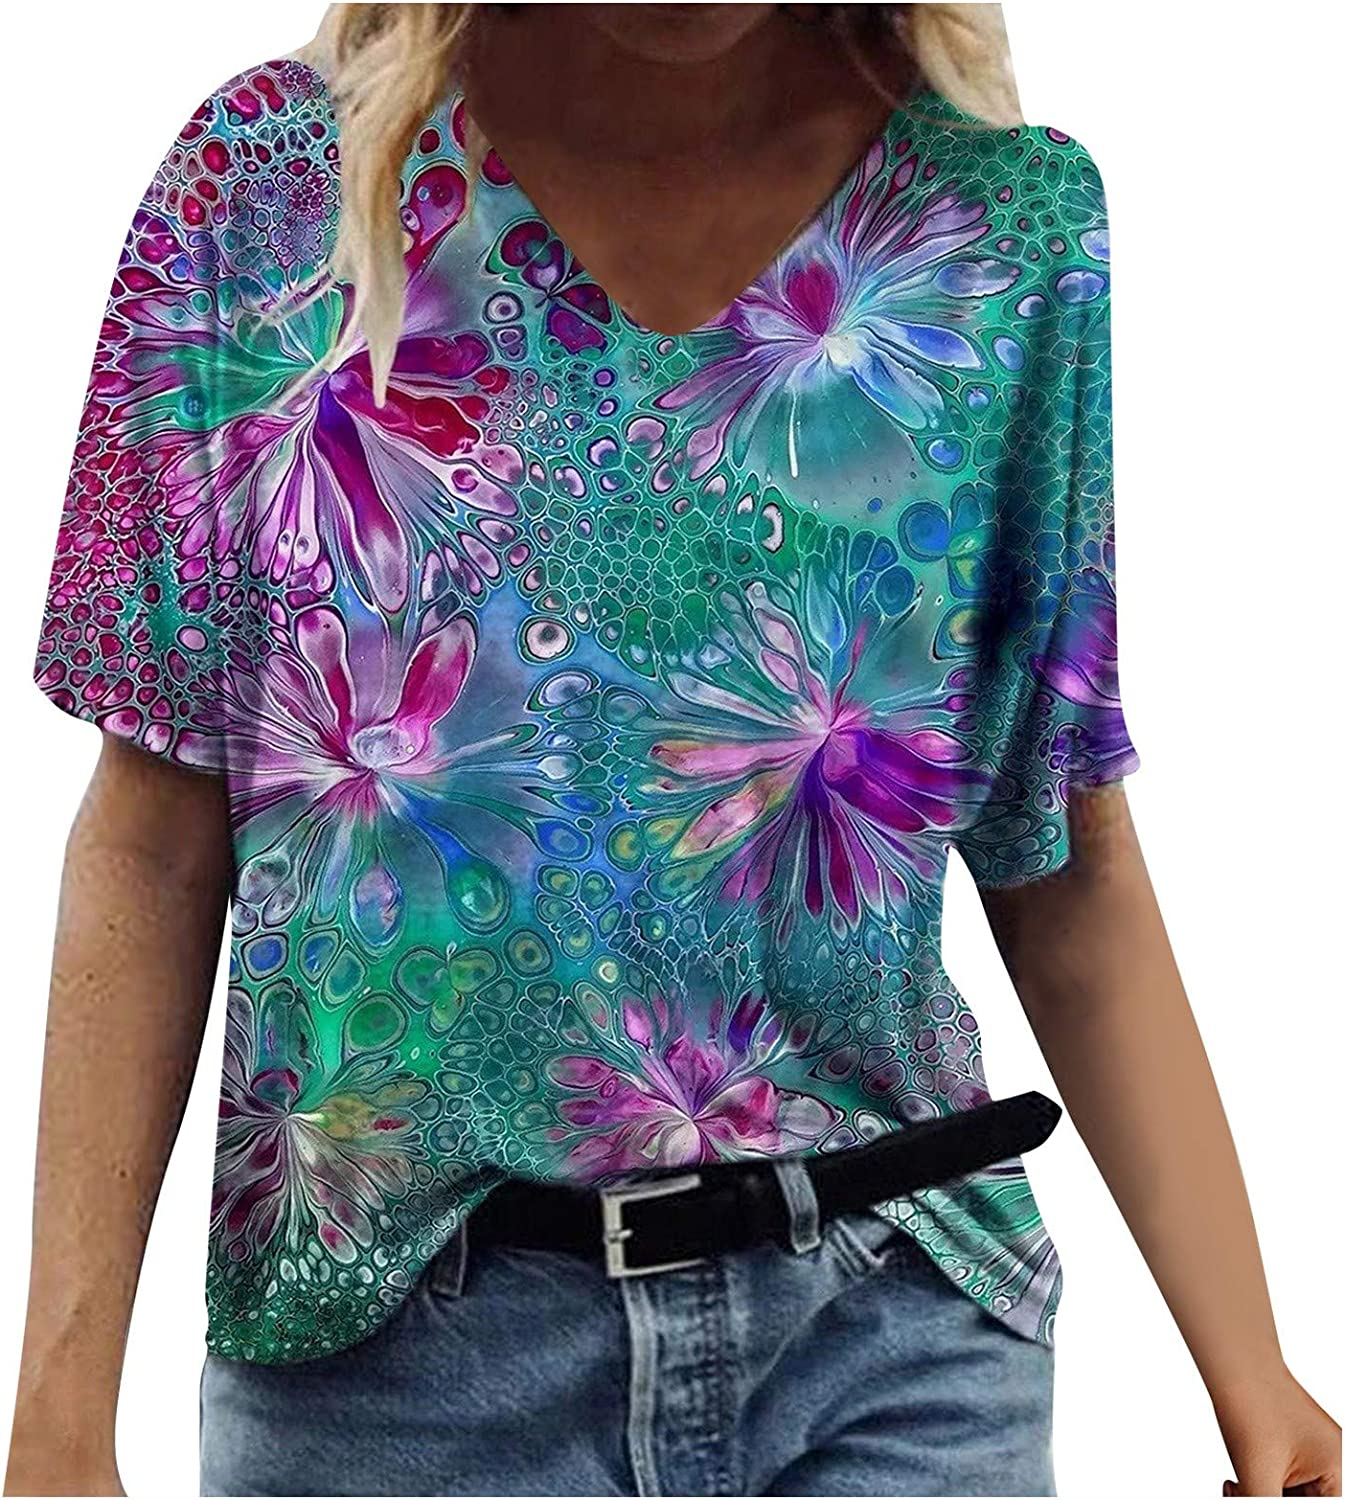 SALIFUN Tshirts for Womens, Womens Summer T-Shirts Flower Abstract Vintage Print Casual V-Neck Blouse Tops Tunics Graphic Tee